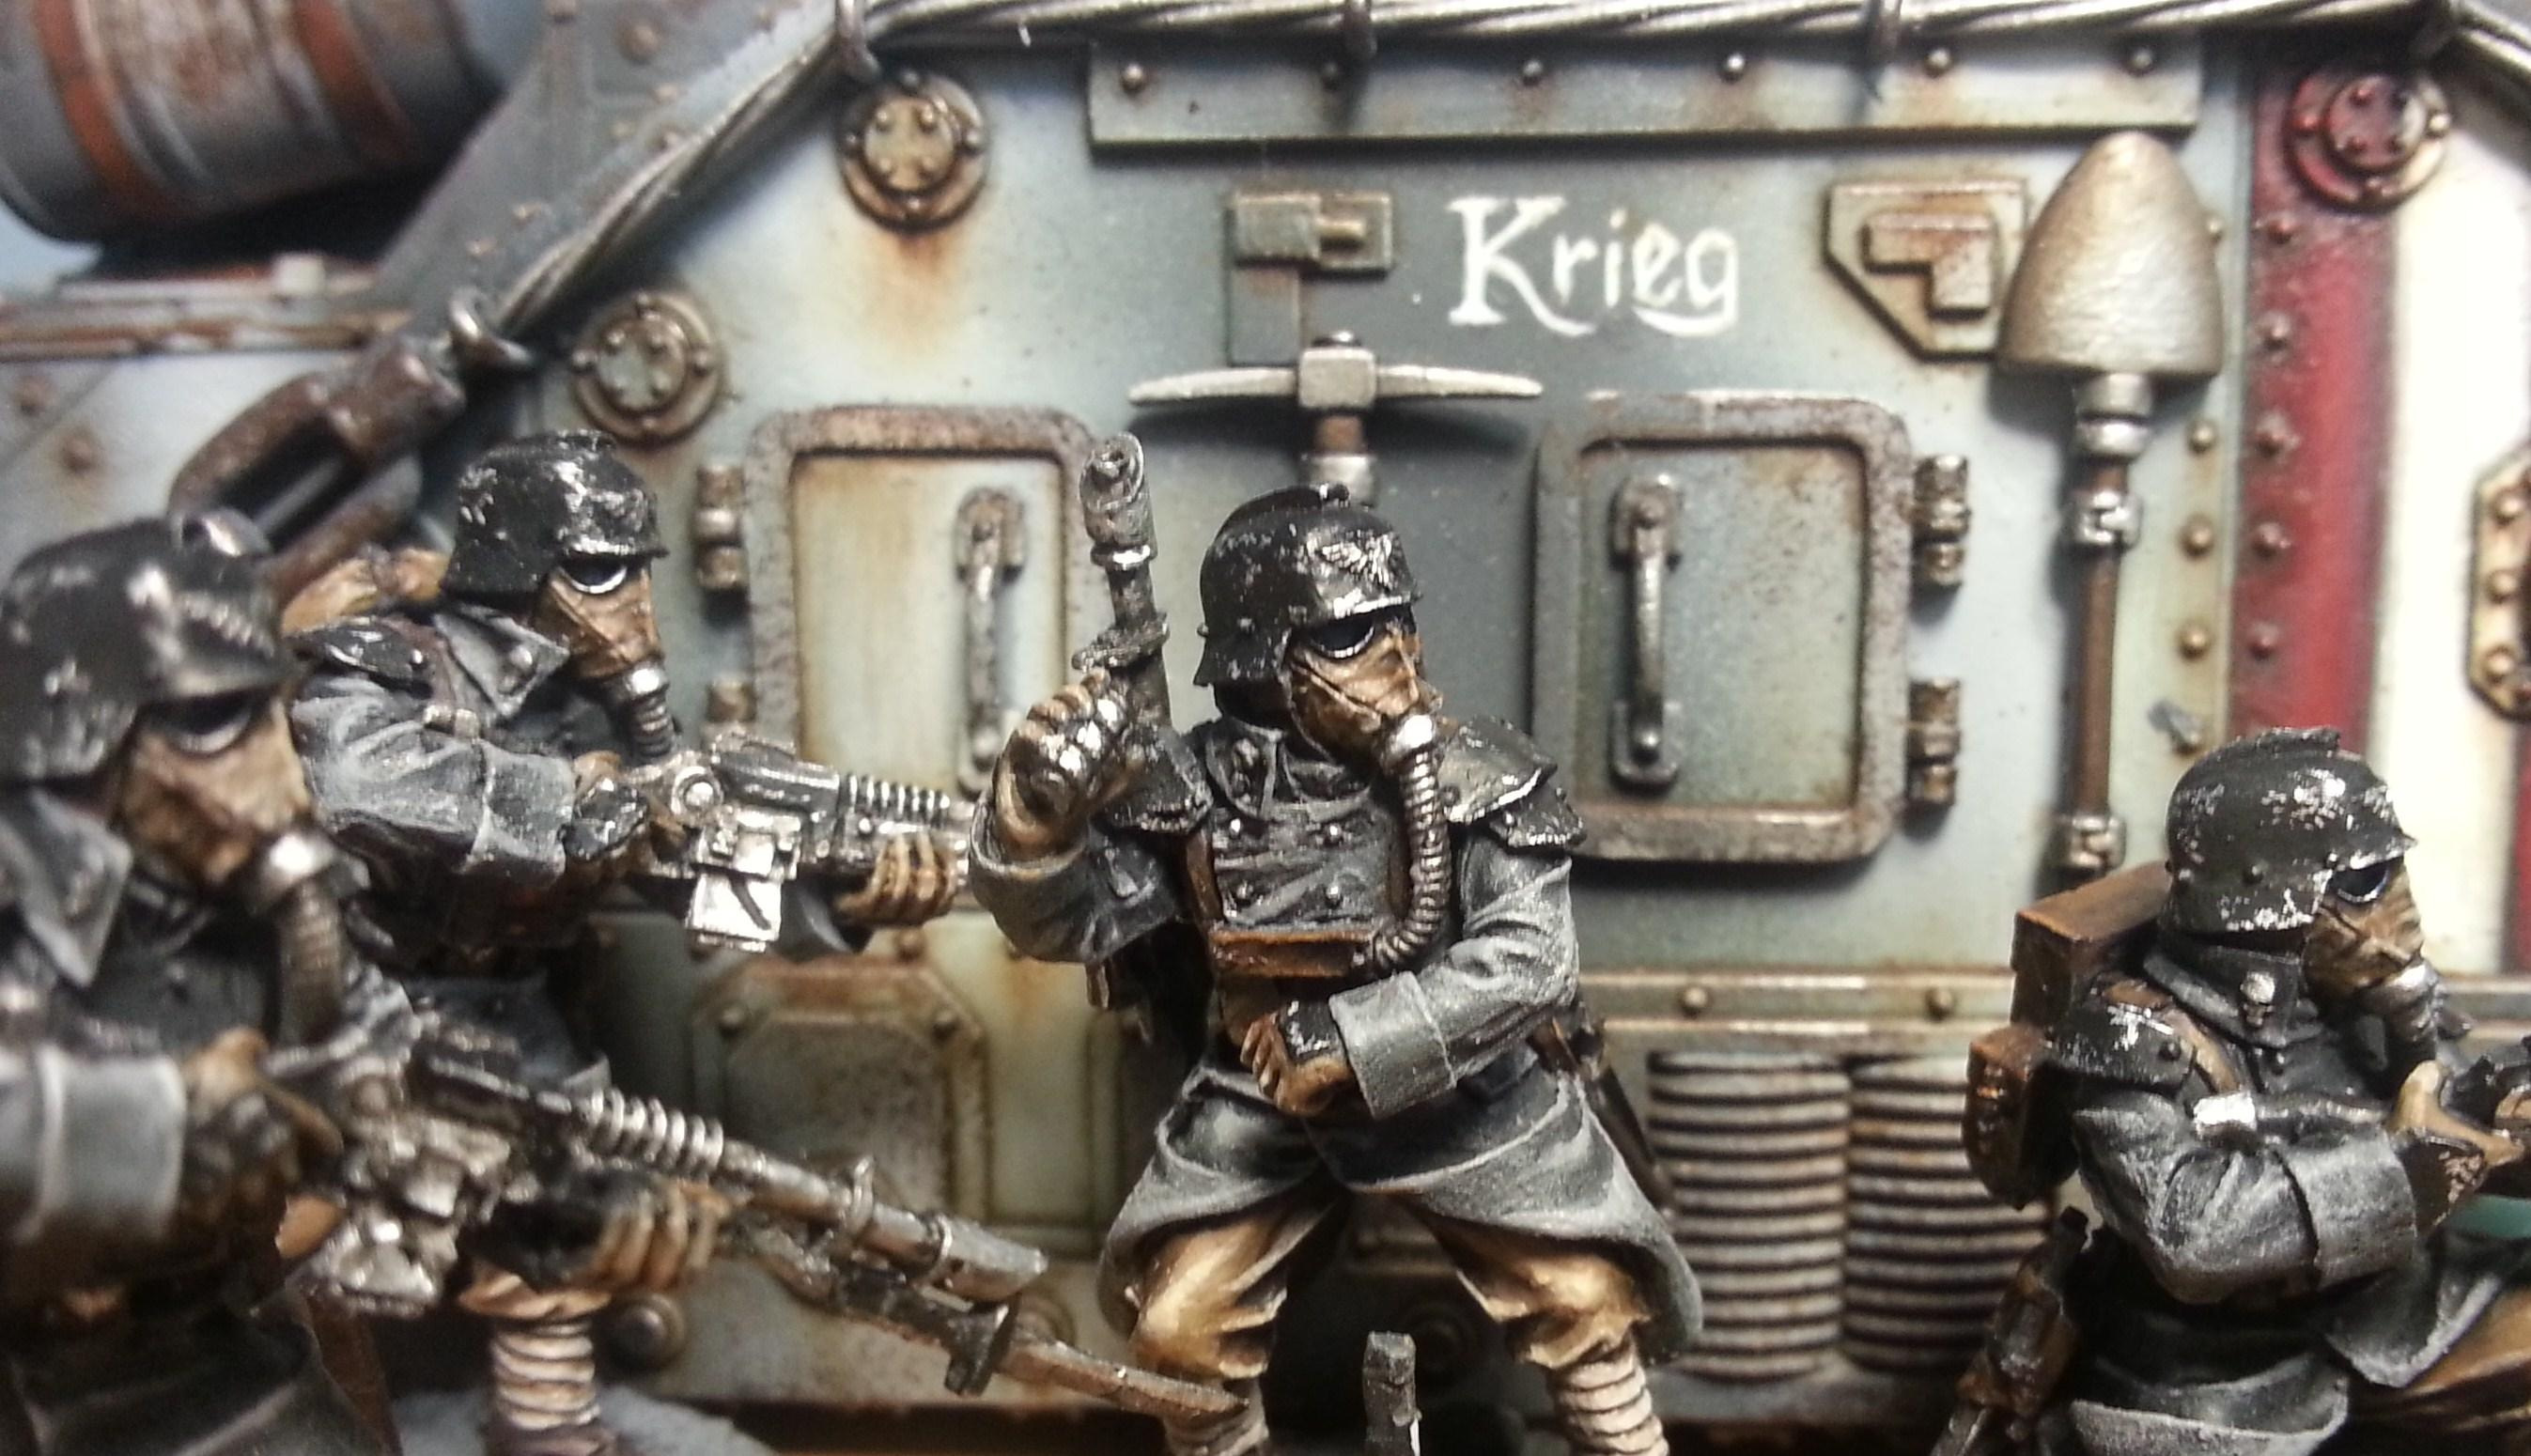 Death Korps of Krieg, Forge World, Guardsmen, Imperial Guard, Lasgun, Leman Russ, Warhammer 40,000